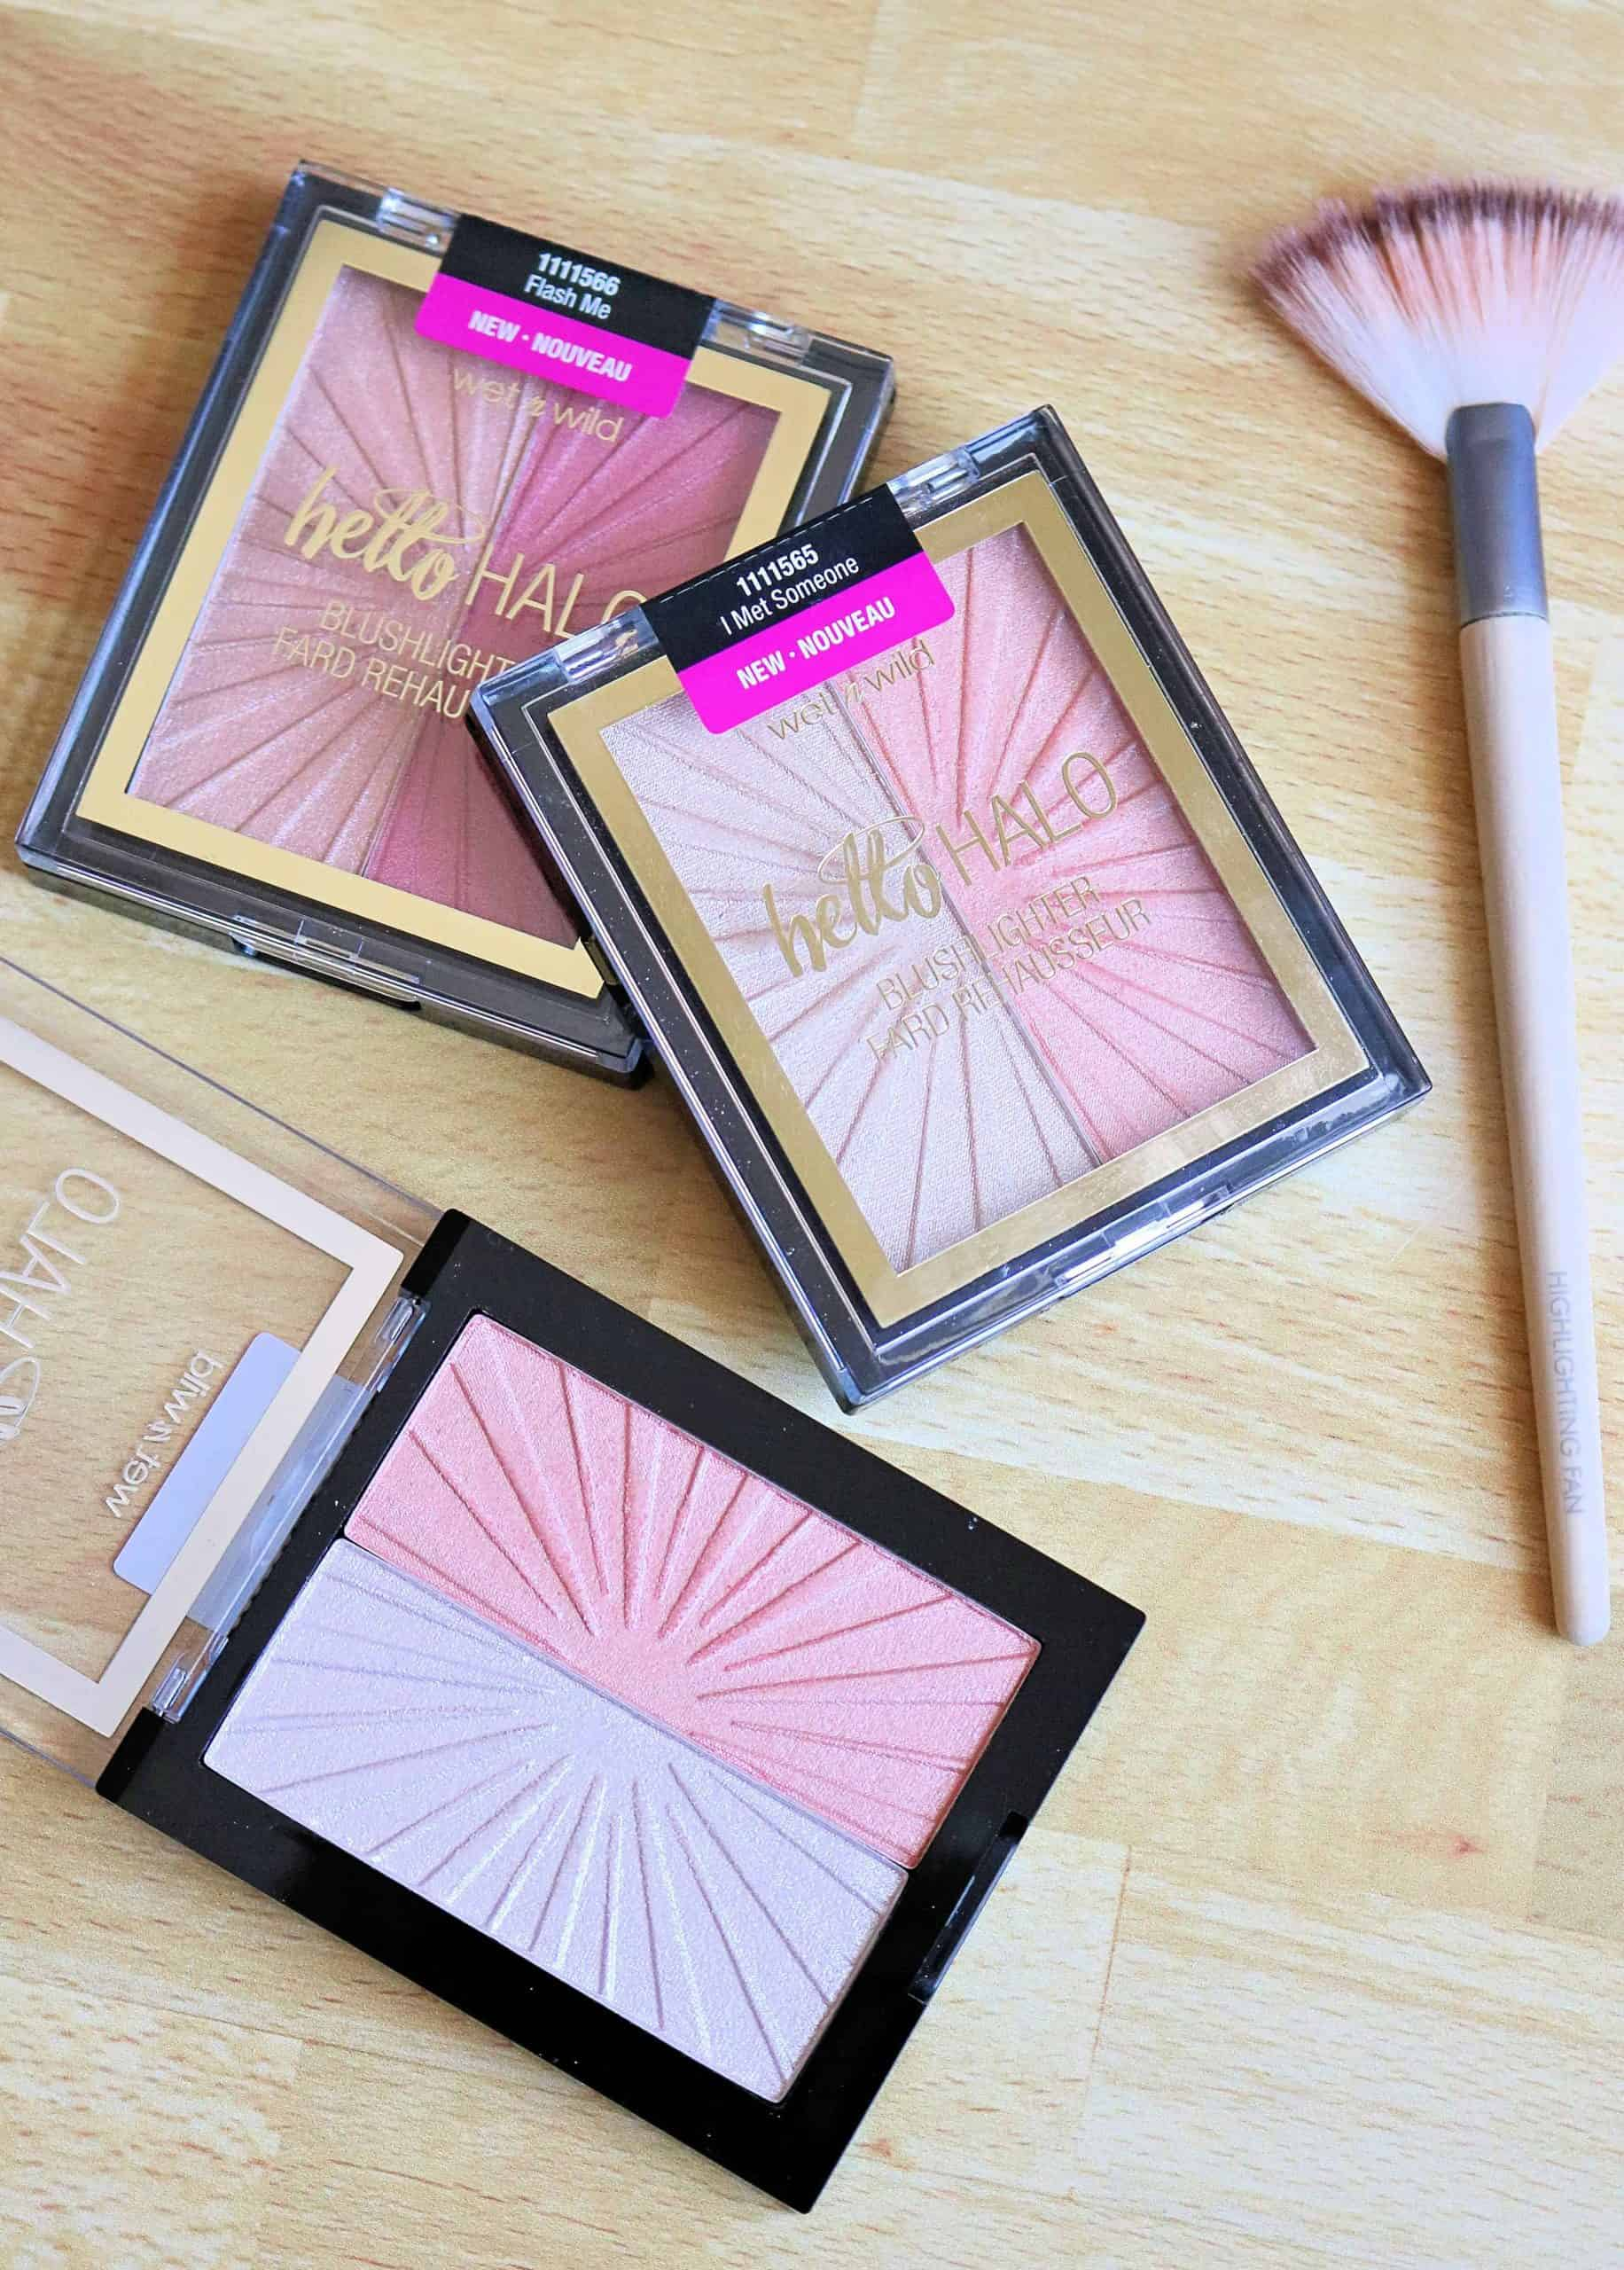 Looking for a beautiful blush and highlighter at the drugstore? Check out my full review of the new Wet n Wild Mega Glo Hello Halo Blushlighter with swatches of all three shades including Flash Me, Highlight Bling, and I Met Someone. #drugstoremakeup #makeupreview #wetnwildbeauty